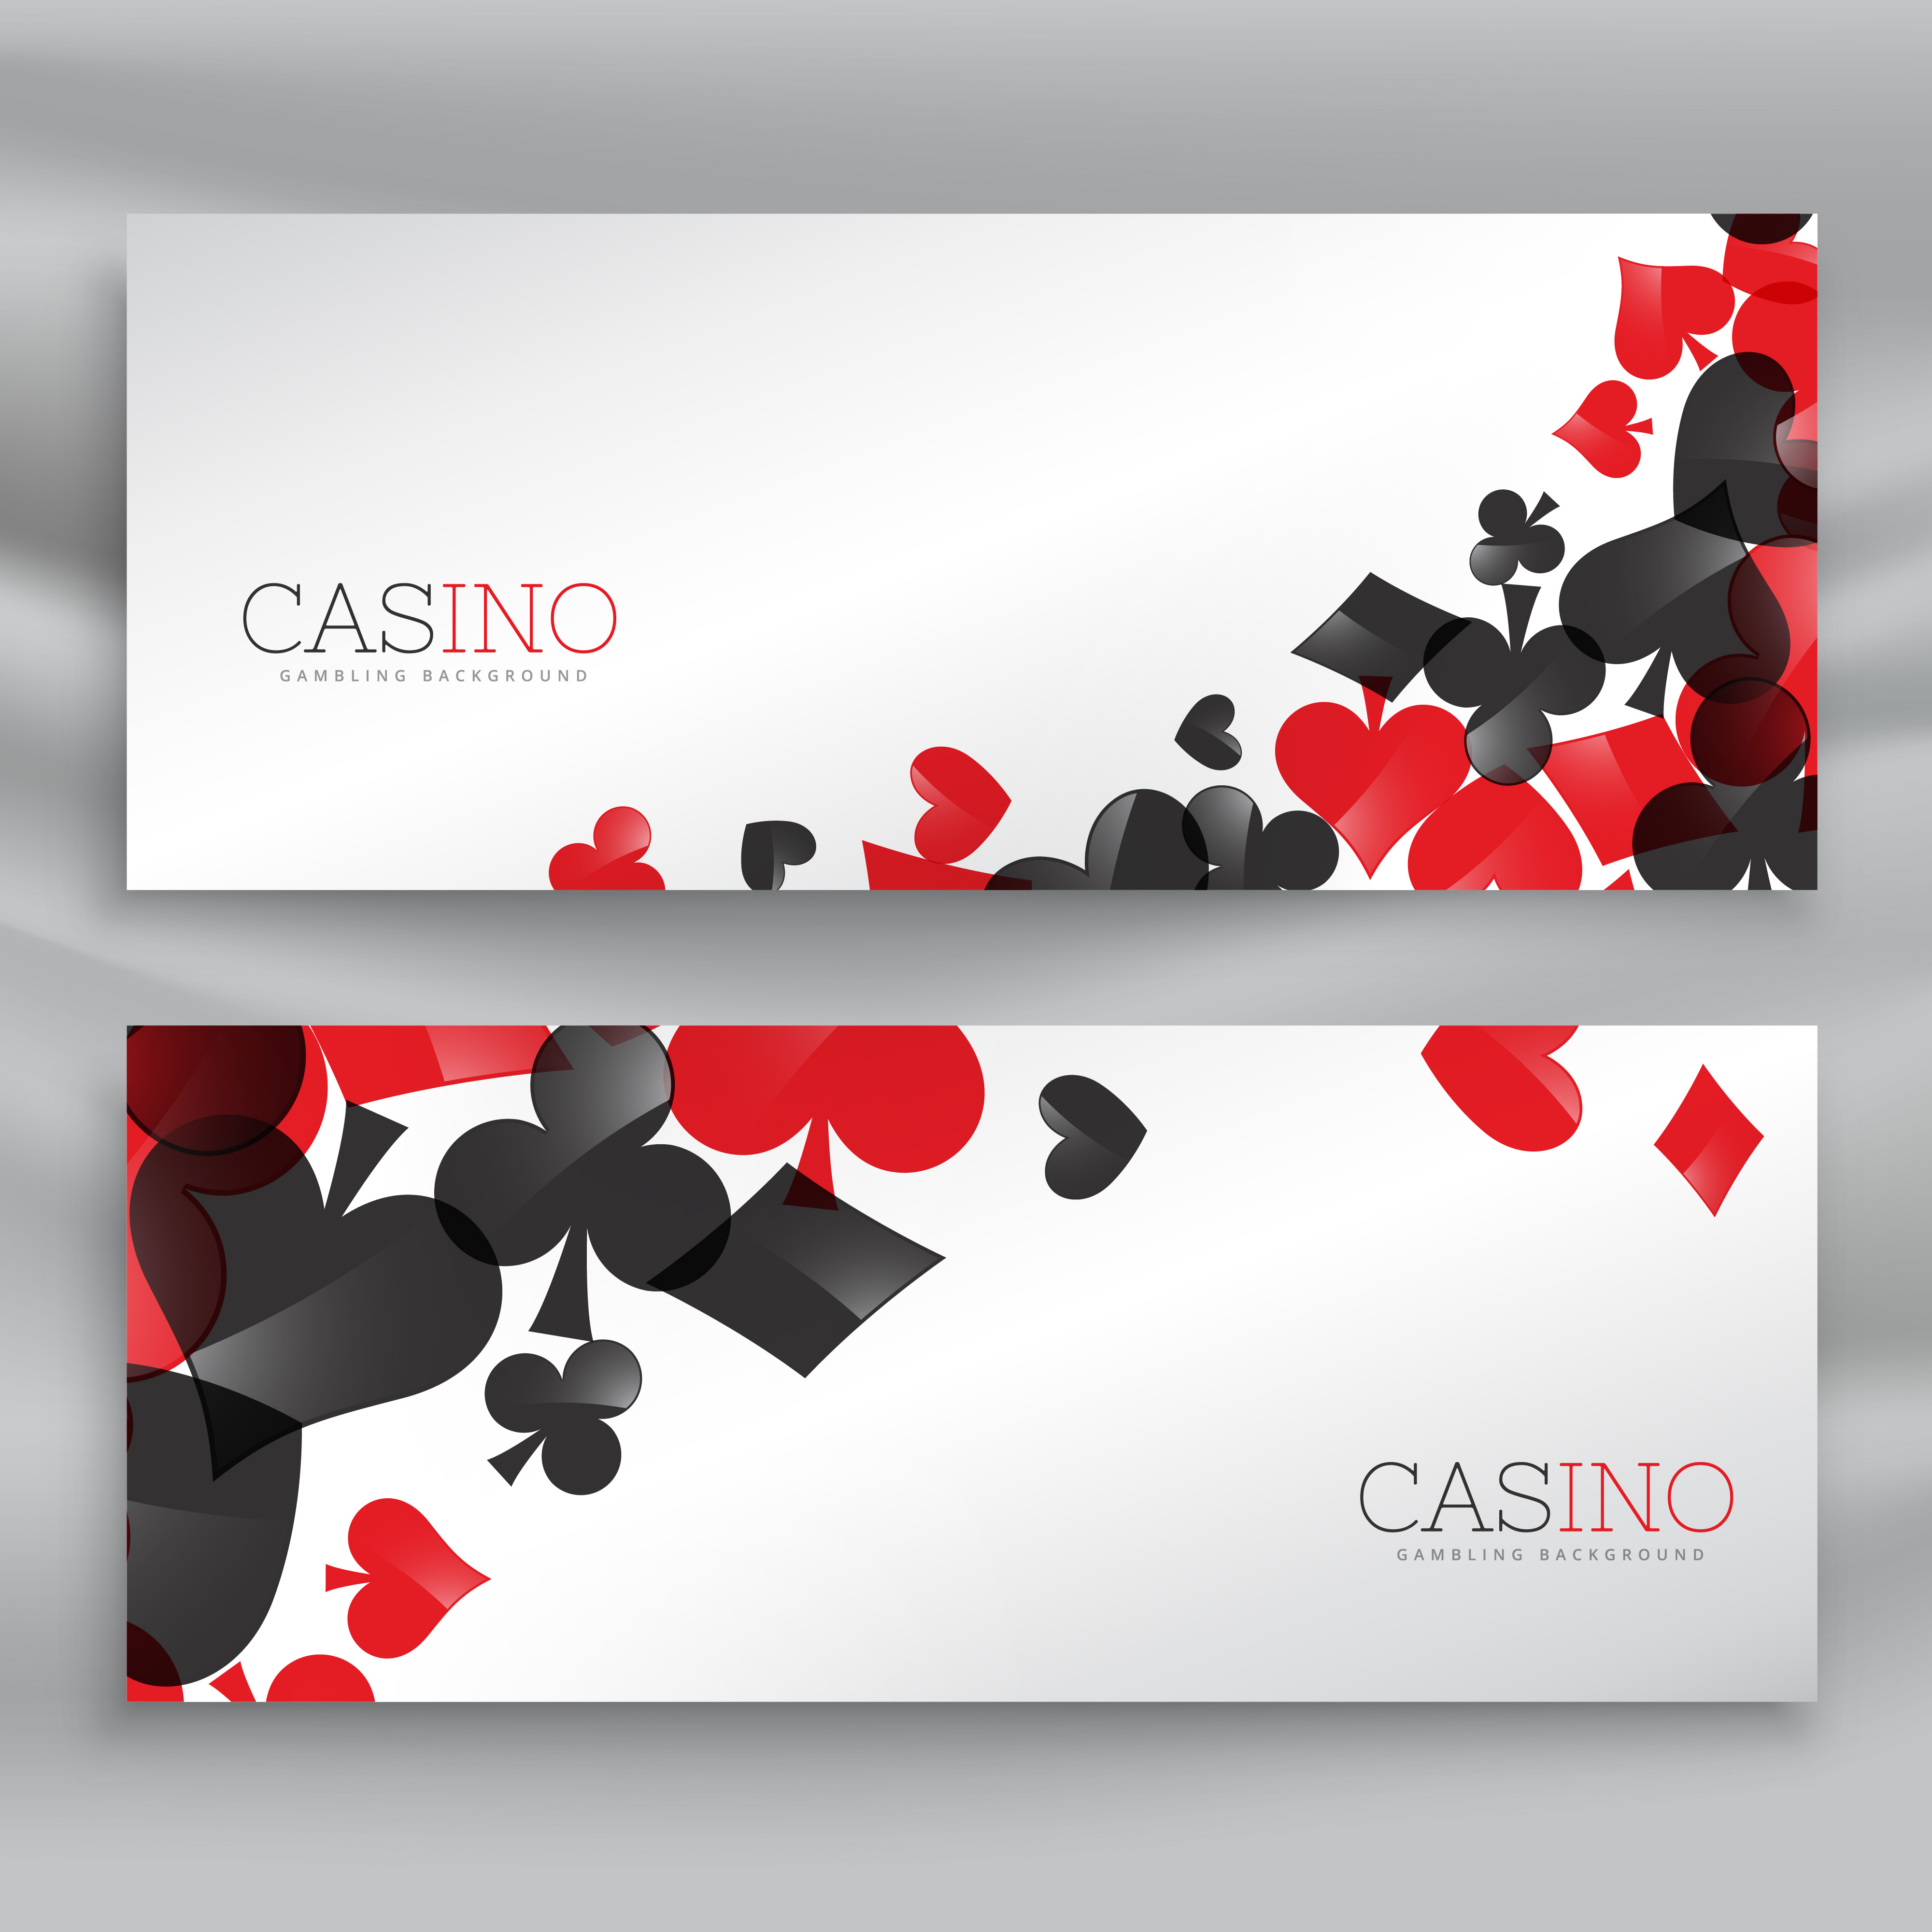 Casino banners with playing cards symbols download free vector casino banners with playing cards symbols download free vector art stock graphics images biocorpaavc